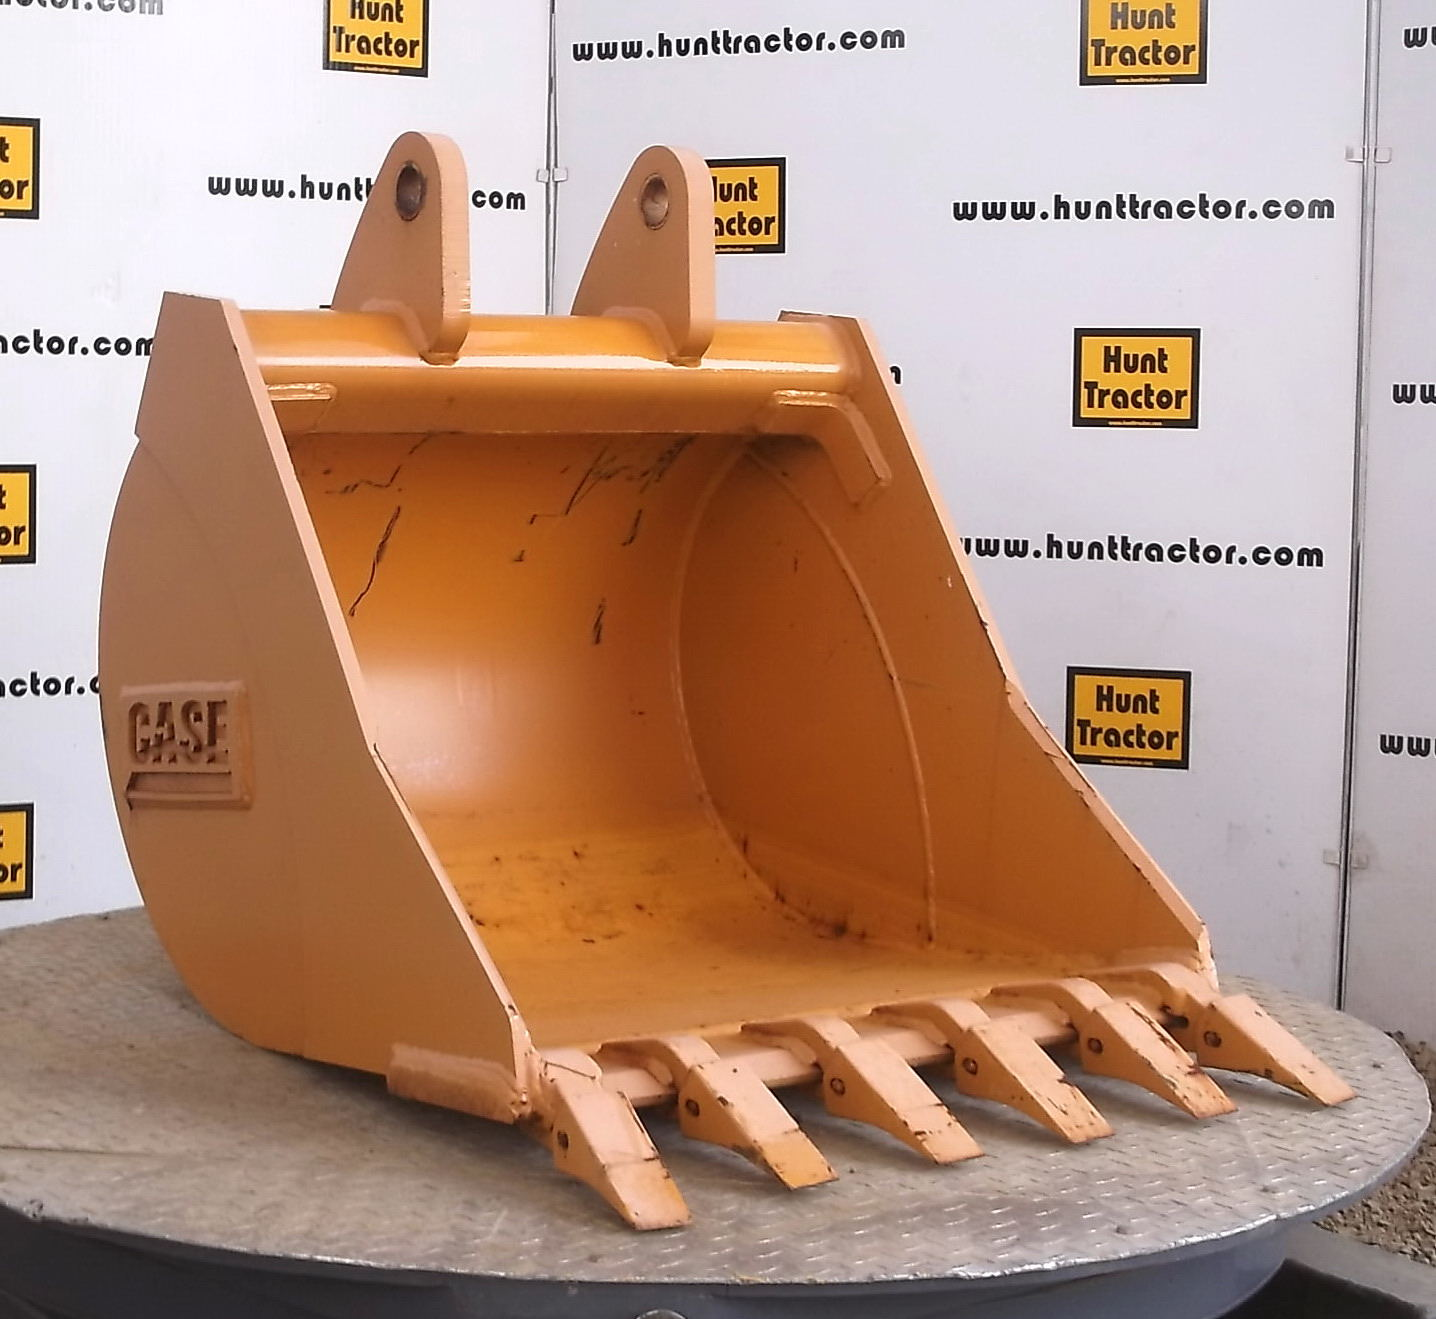 47191-30in Case 590L Bucket-1